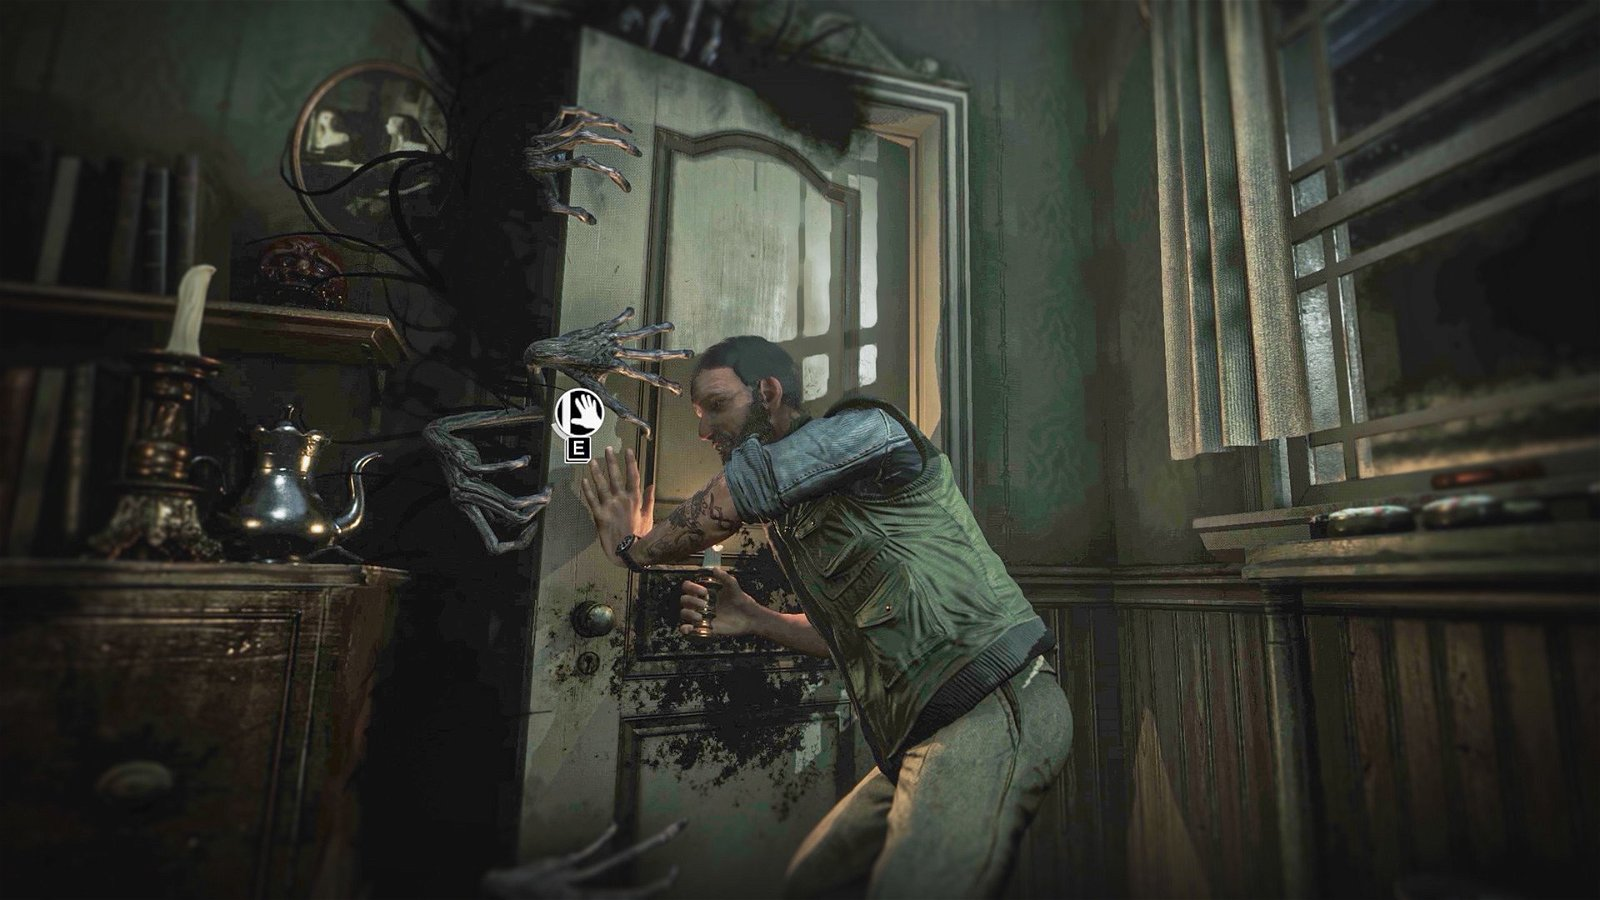 Song of Horror will Sneak onto PS4 and Xbox One on May 28